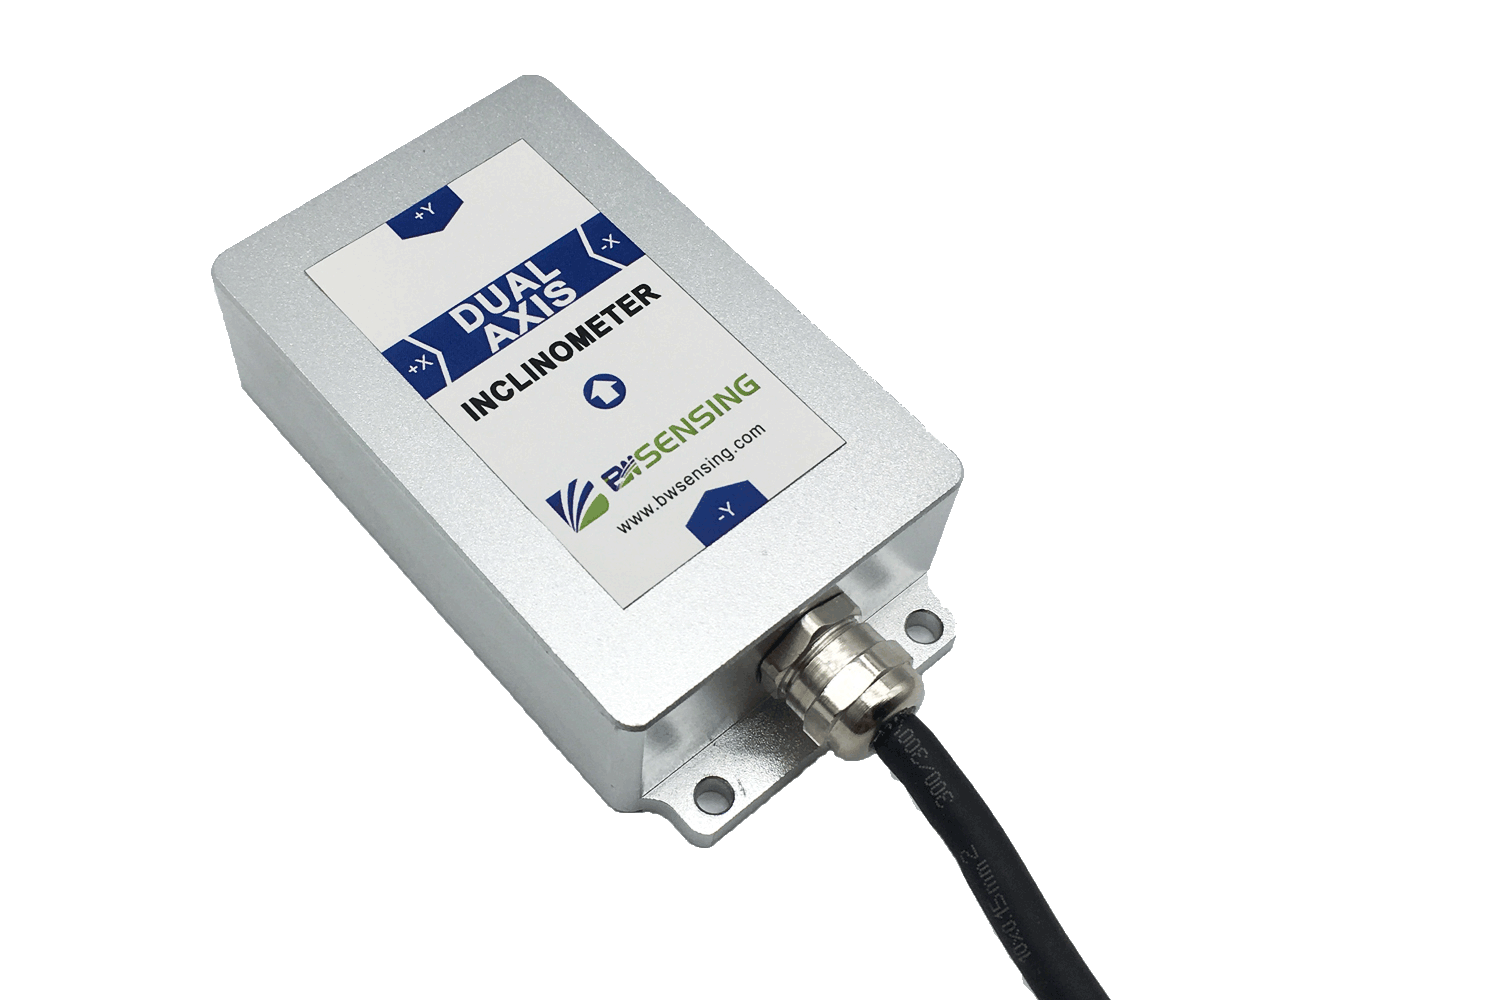 BWSENSING High accuracy Dual-axis Inclinometer BWS4700 Digital output with Modbus